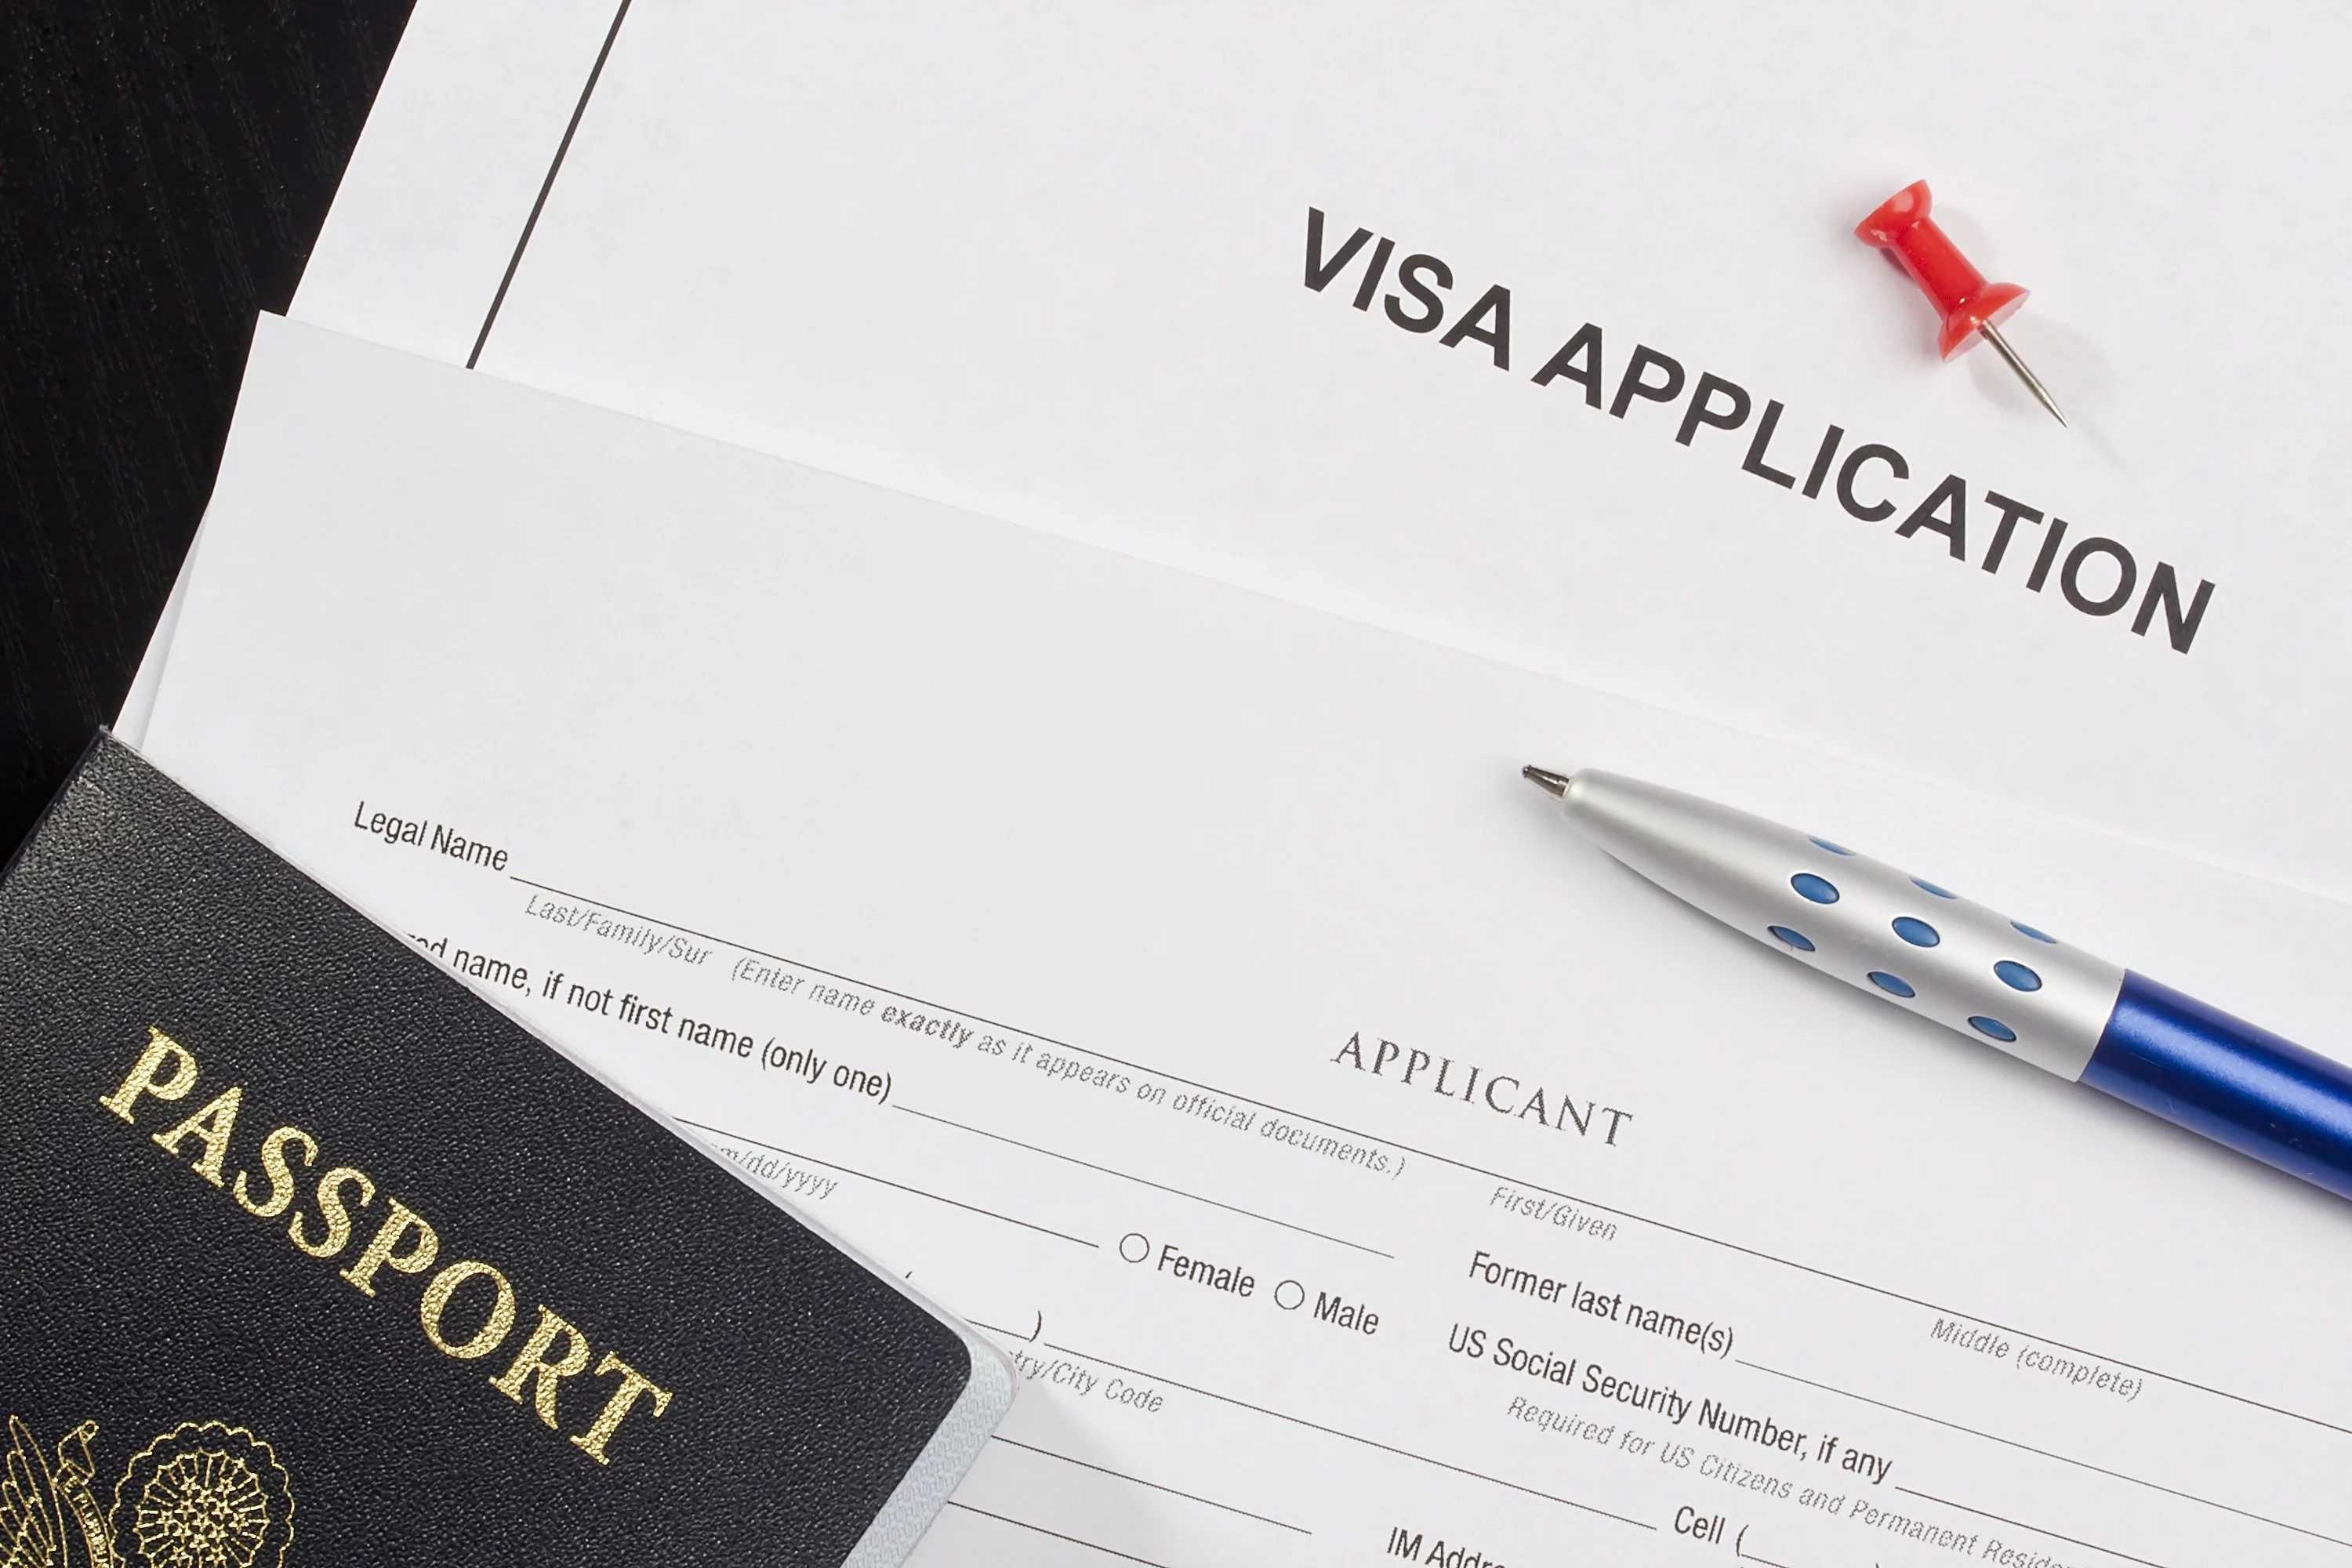 Scooper - Education News: How much is Canada visa fee in Nigeria 2018?